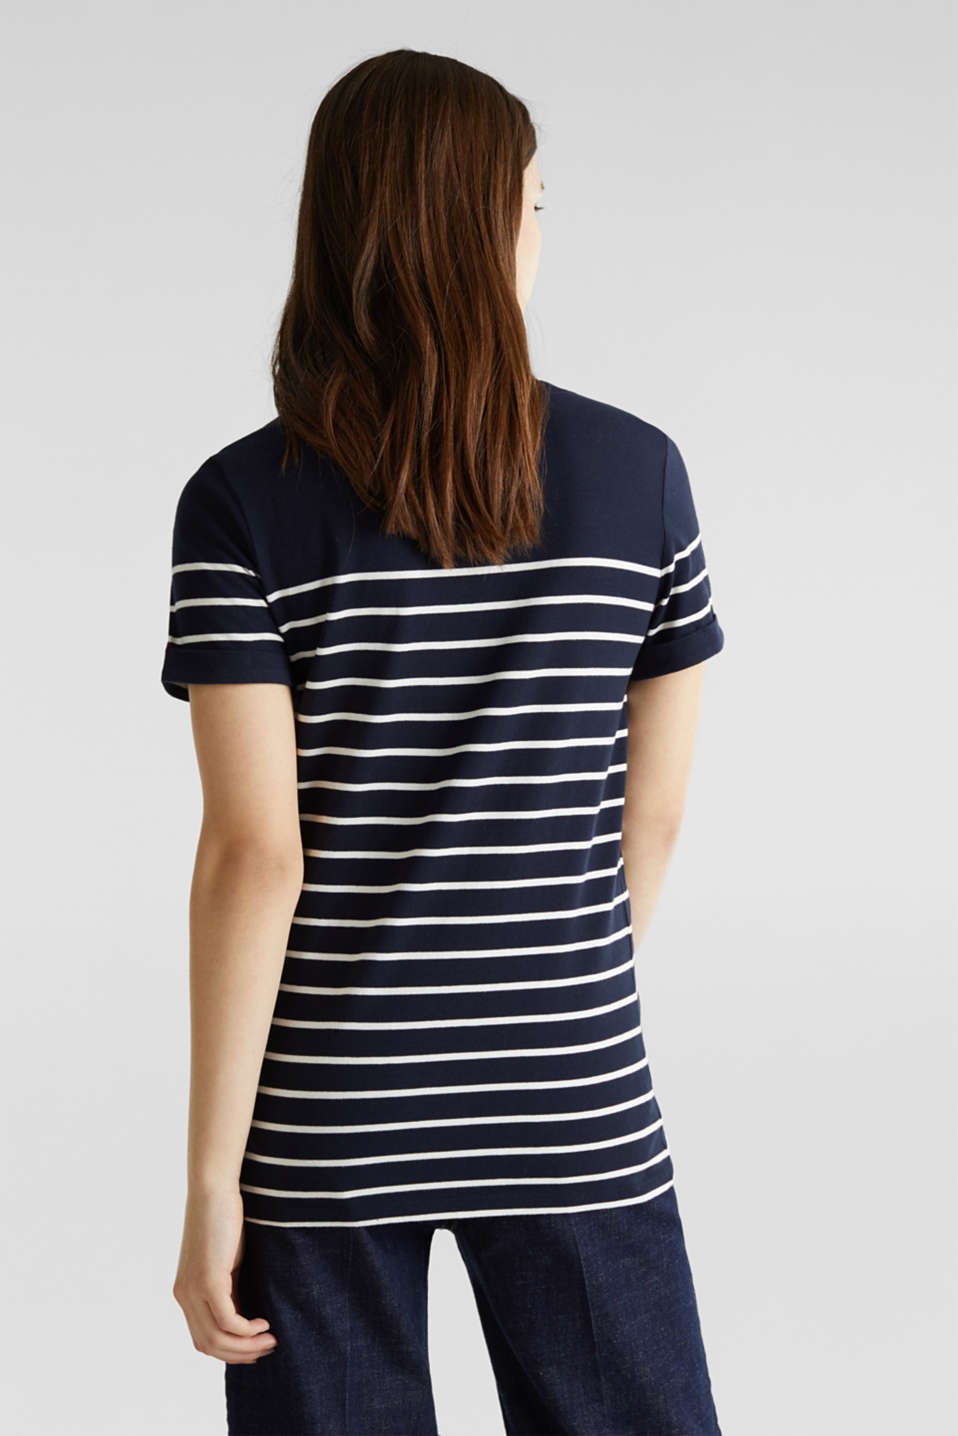 Striped top with embroidery, 100% cotton, NAVY, detail image number 3